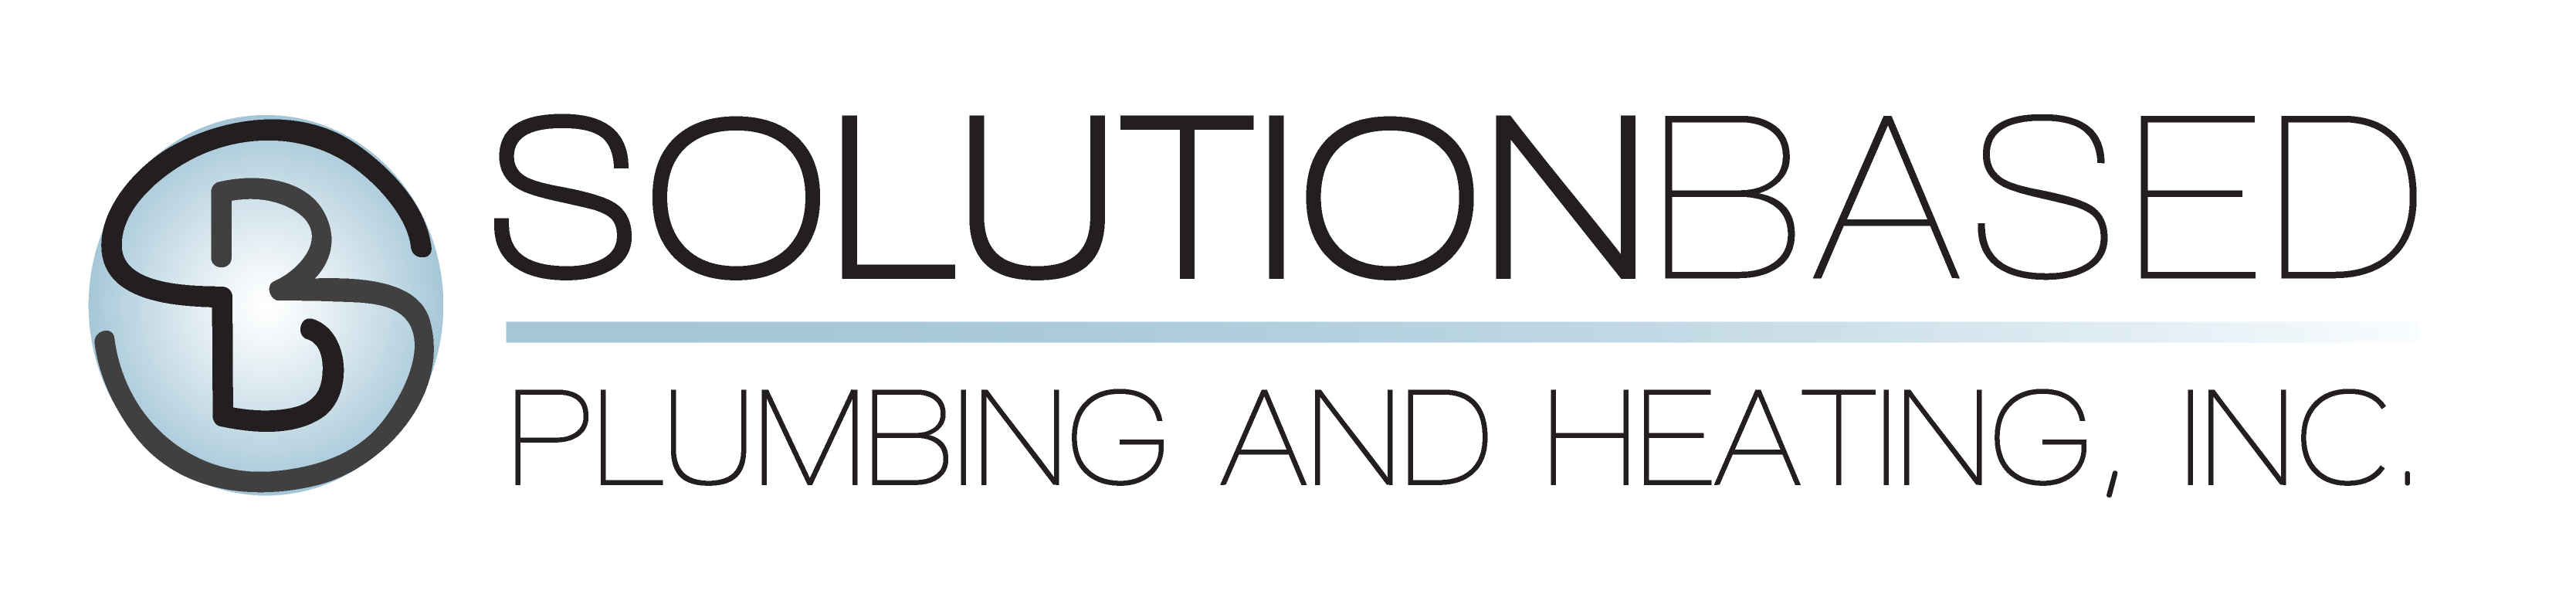 Solution Based Plumbing & Heating, Inc